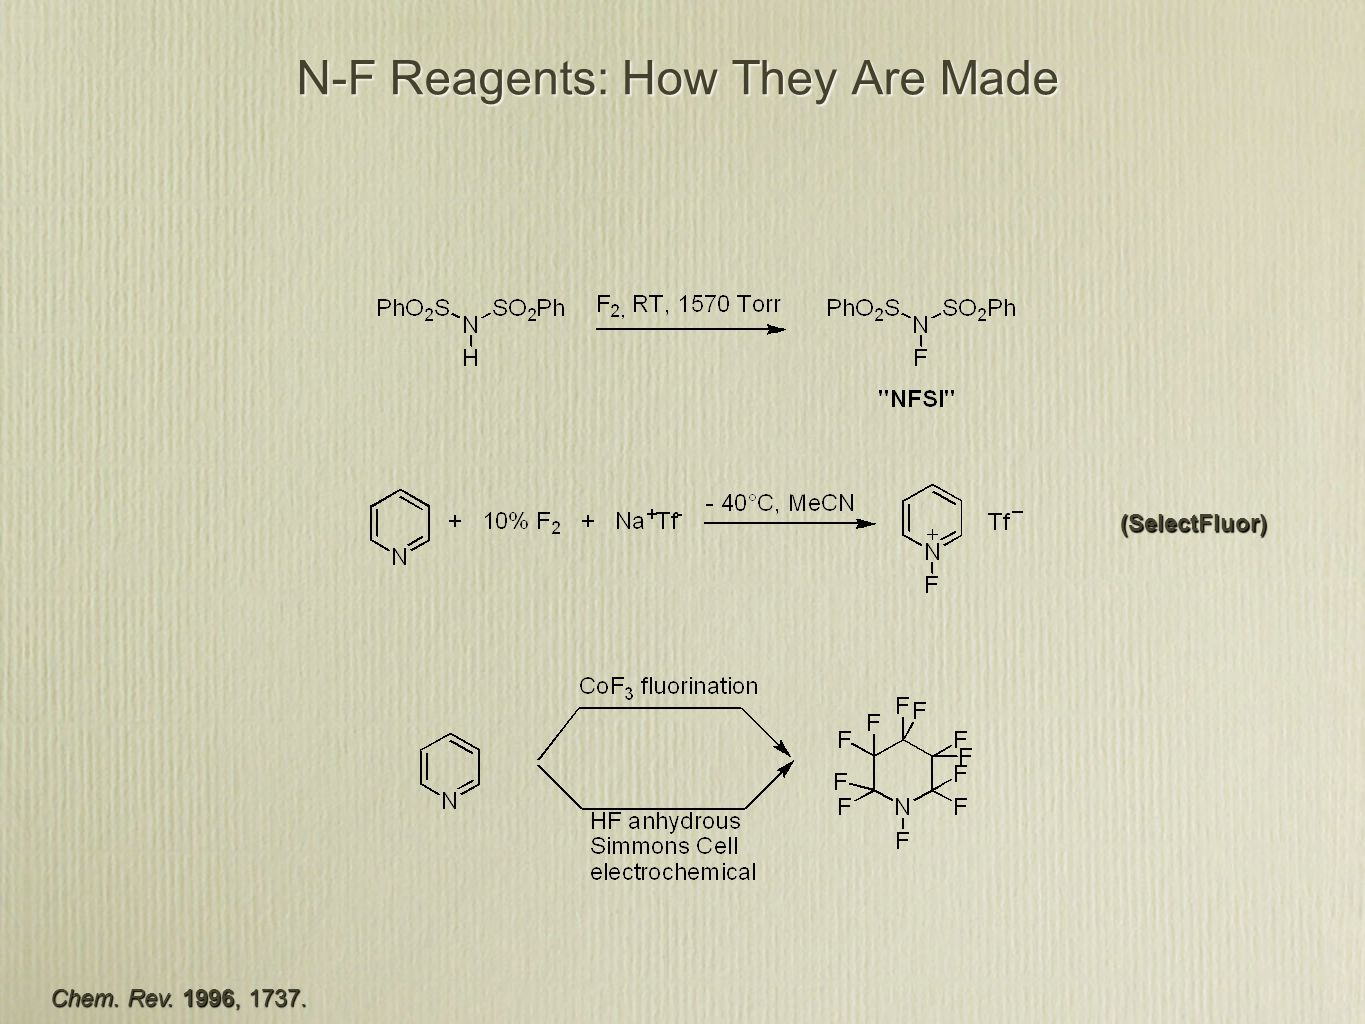 N-F Reagents: How They Are Made Chem. Rev. 1996, (SelectFluor)